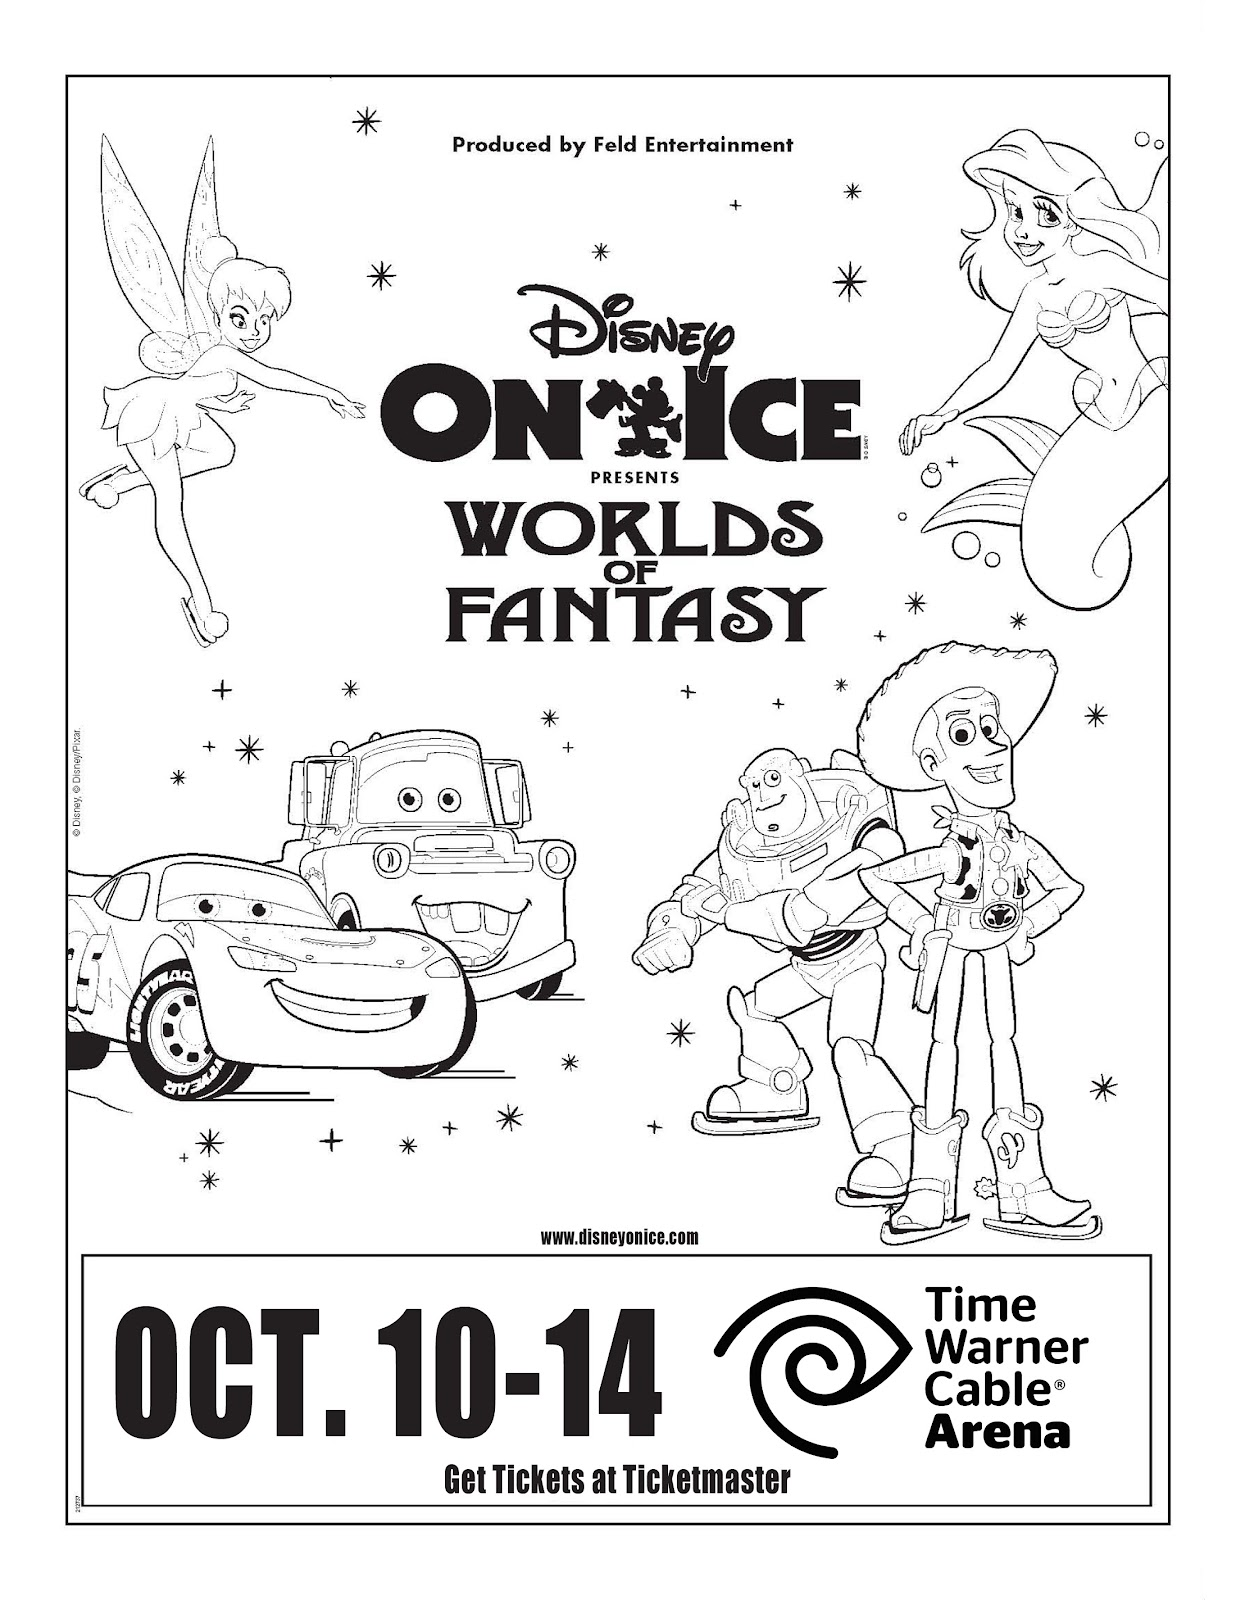 Oh And Just So Youre Not Feeling Left Out Heres A Little Prize For Everyone Free Disney On Ice Coloring Page Click The Image Print